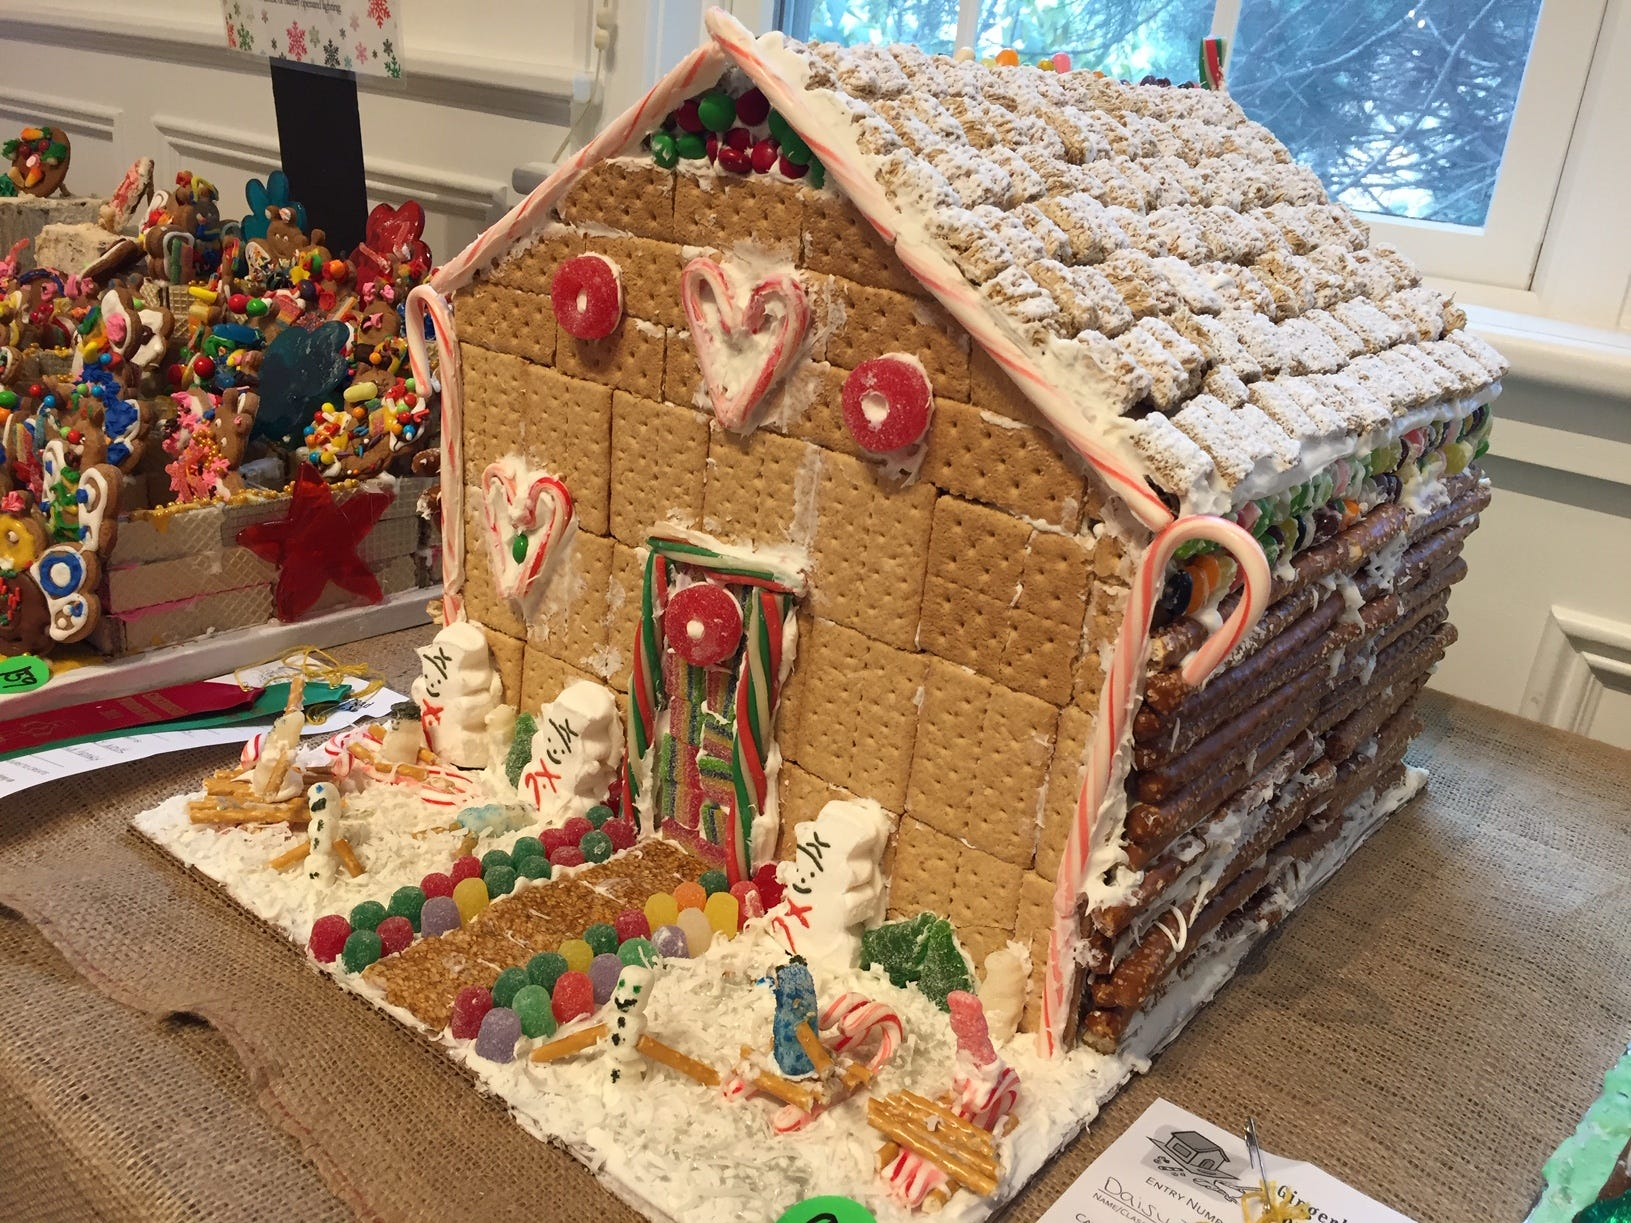 """Candy"" by Daisy Troop 7464 of Hanover Township, at the 2018 Gingerbread Wonderland at the Frelinghuysen Arboretum."